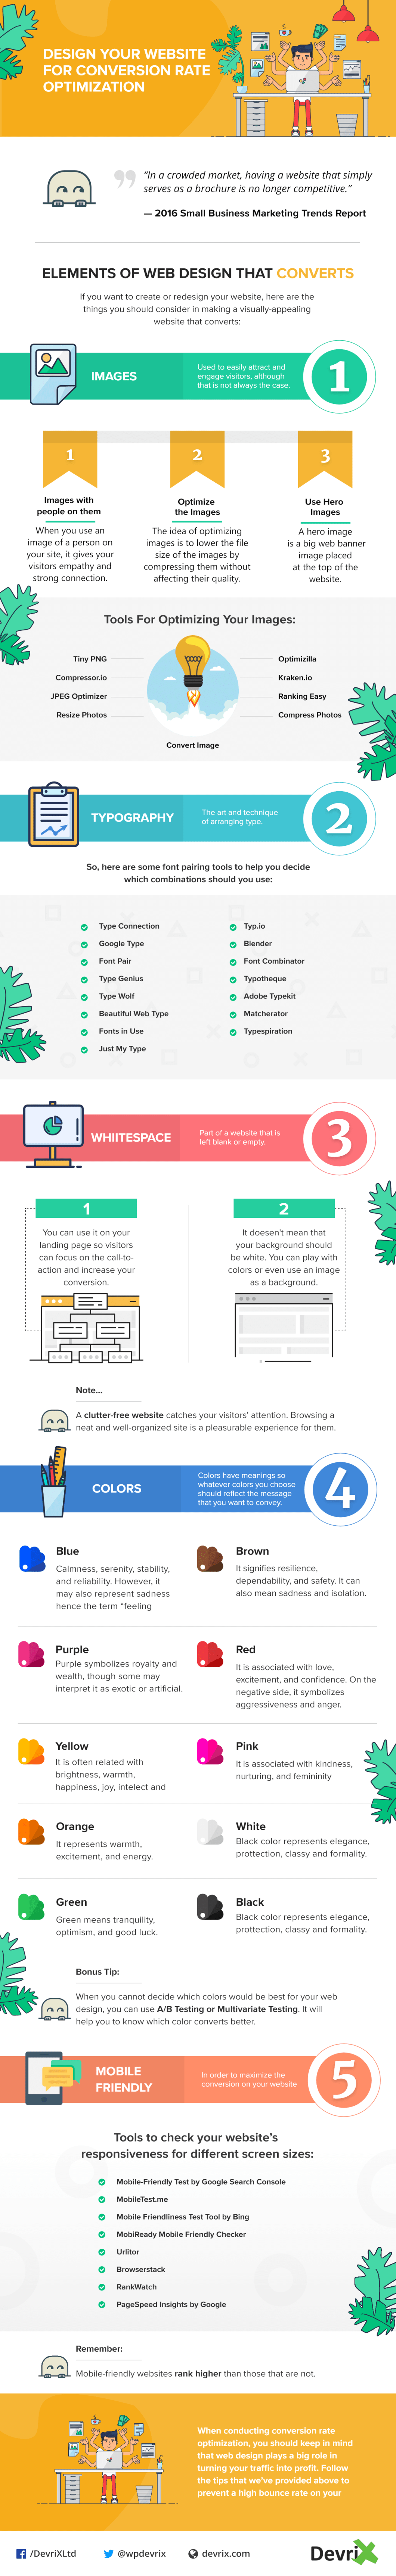 How to Optimize Your Website for Conversions: The 5-Point Guide - Infographic